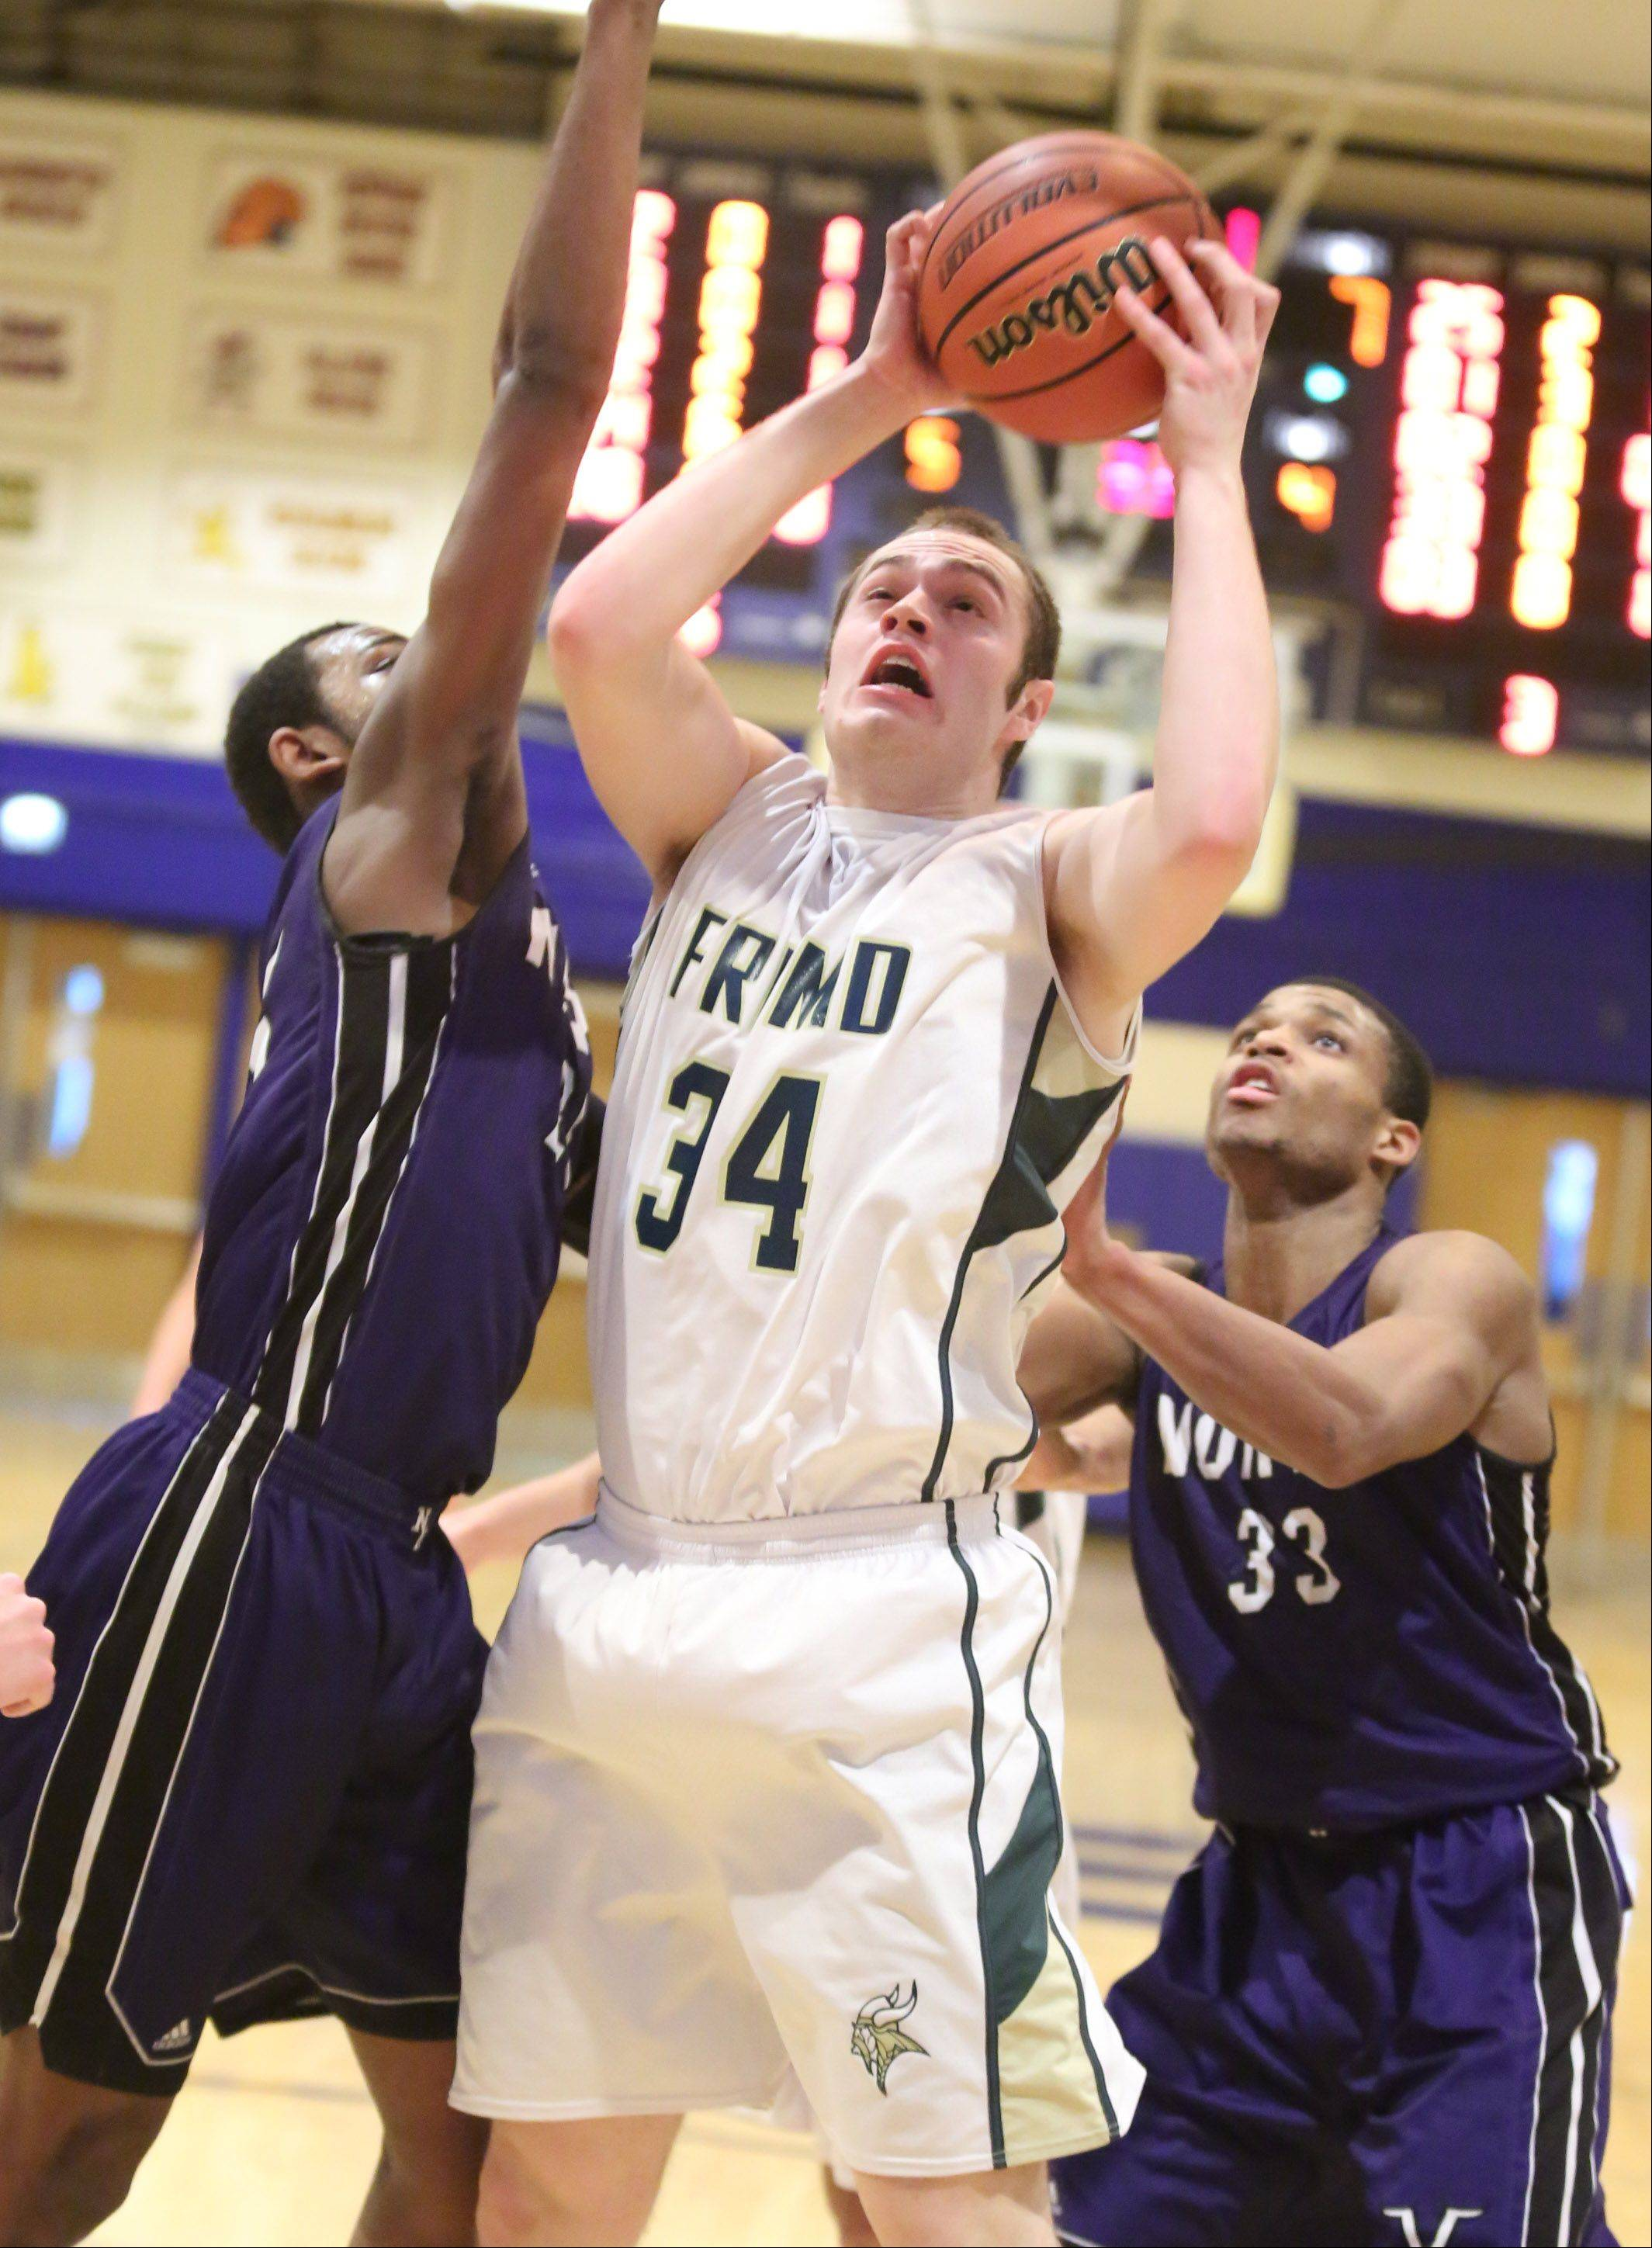 Fremd forward Ben Carlson pulls down an offencive rebound and shoots while splitting two Niles North defenders including Duante Stephens, right, on Thursday at the Wheeling Hardwood Classic.